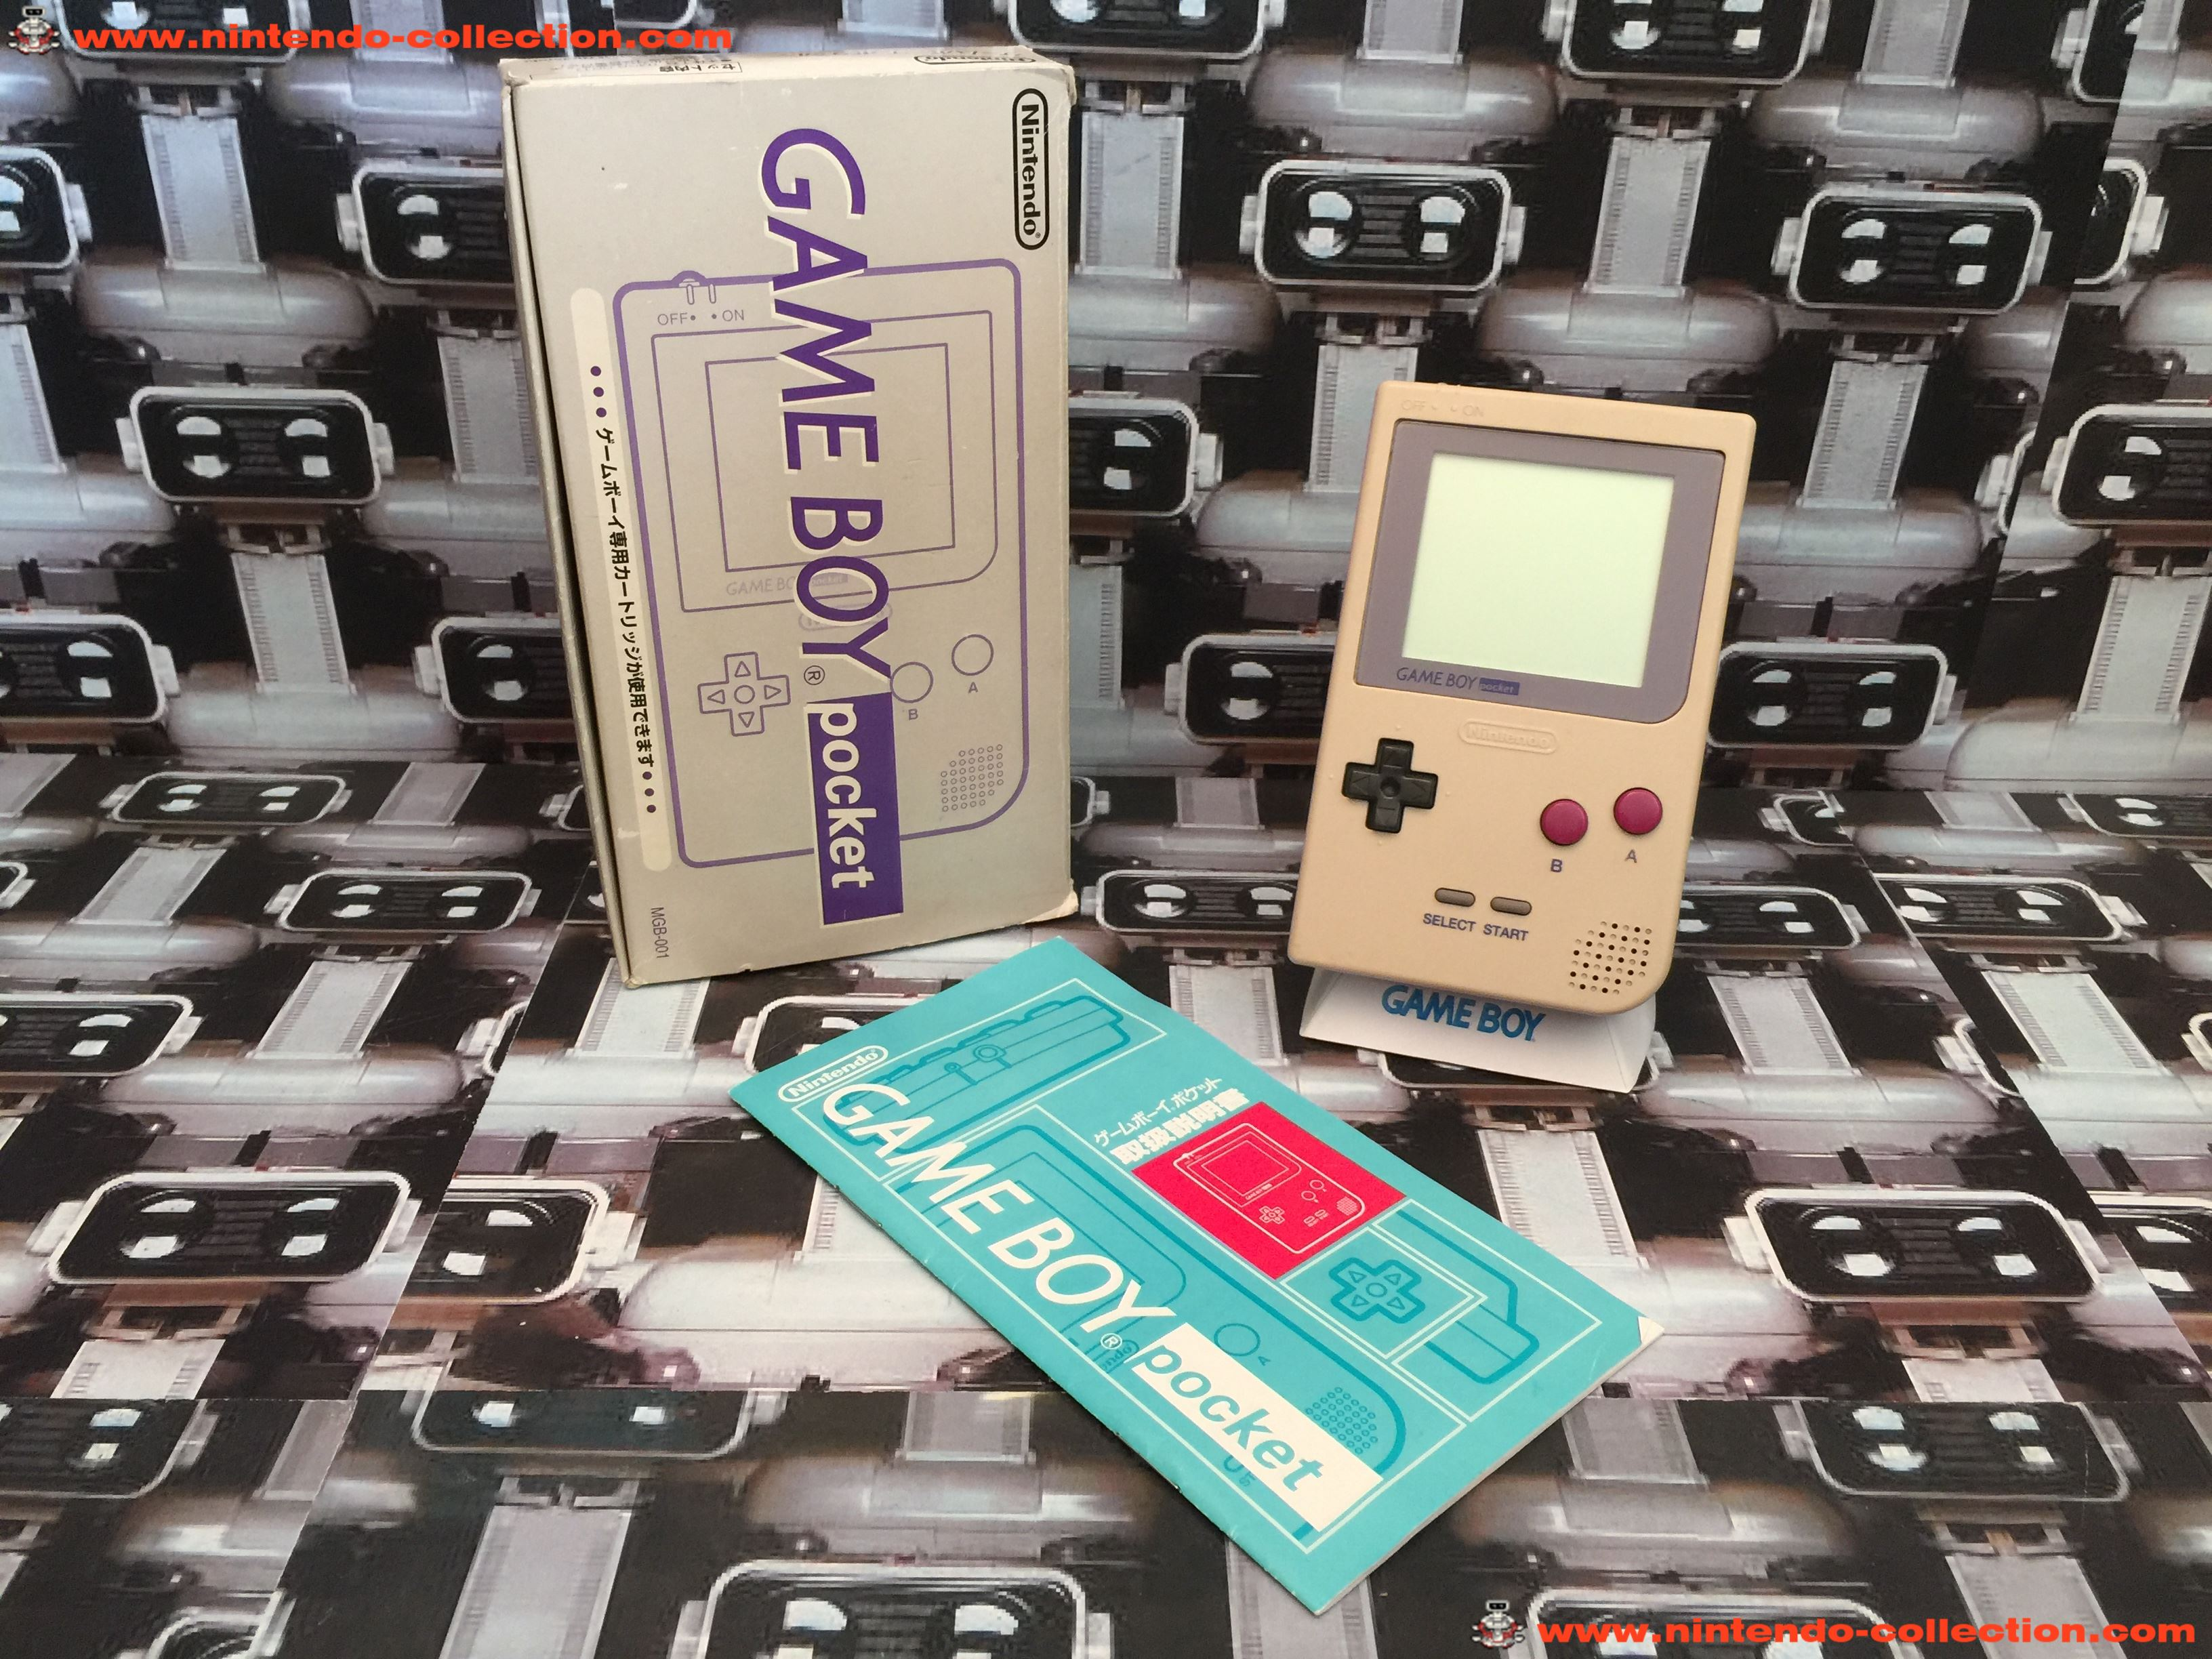 www.nintendo-collection.com - Gameboy GB Classic Color Limited edition Japan